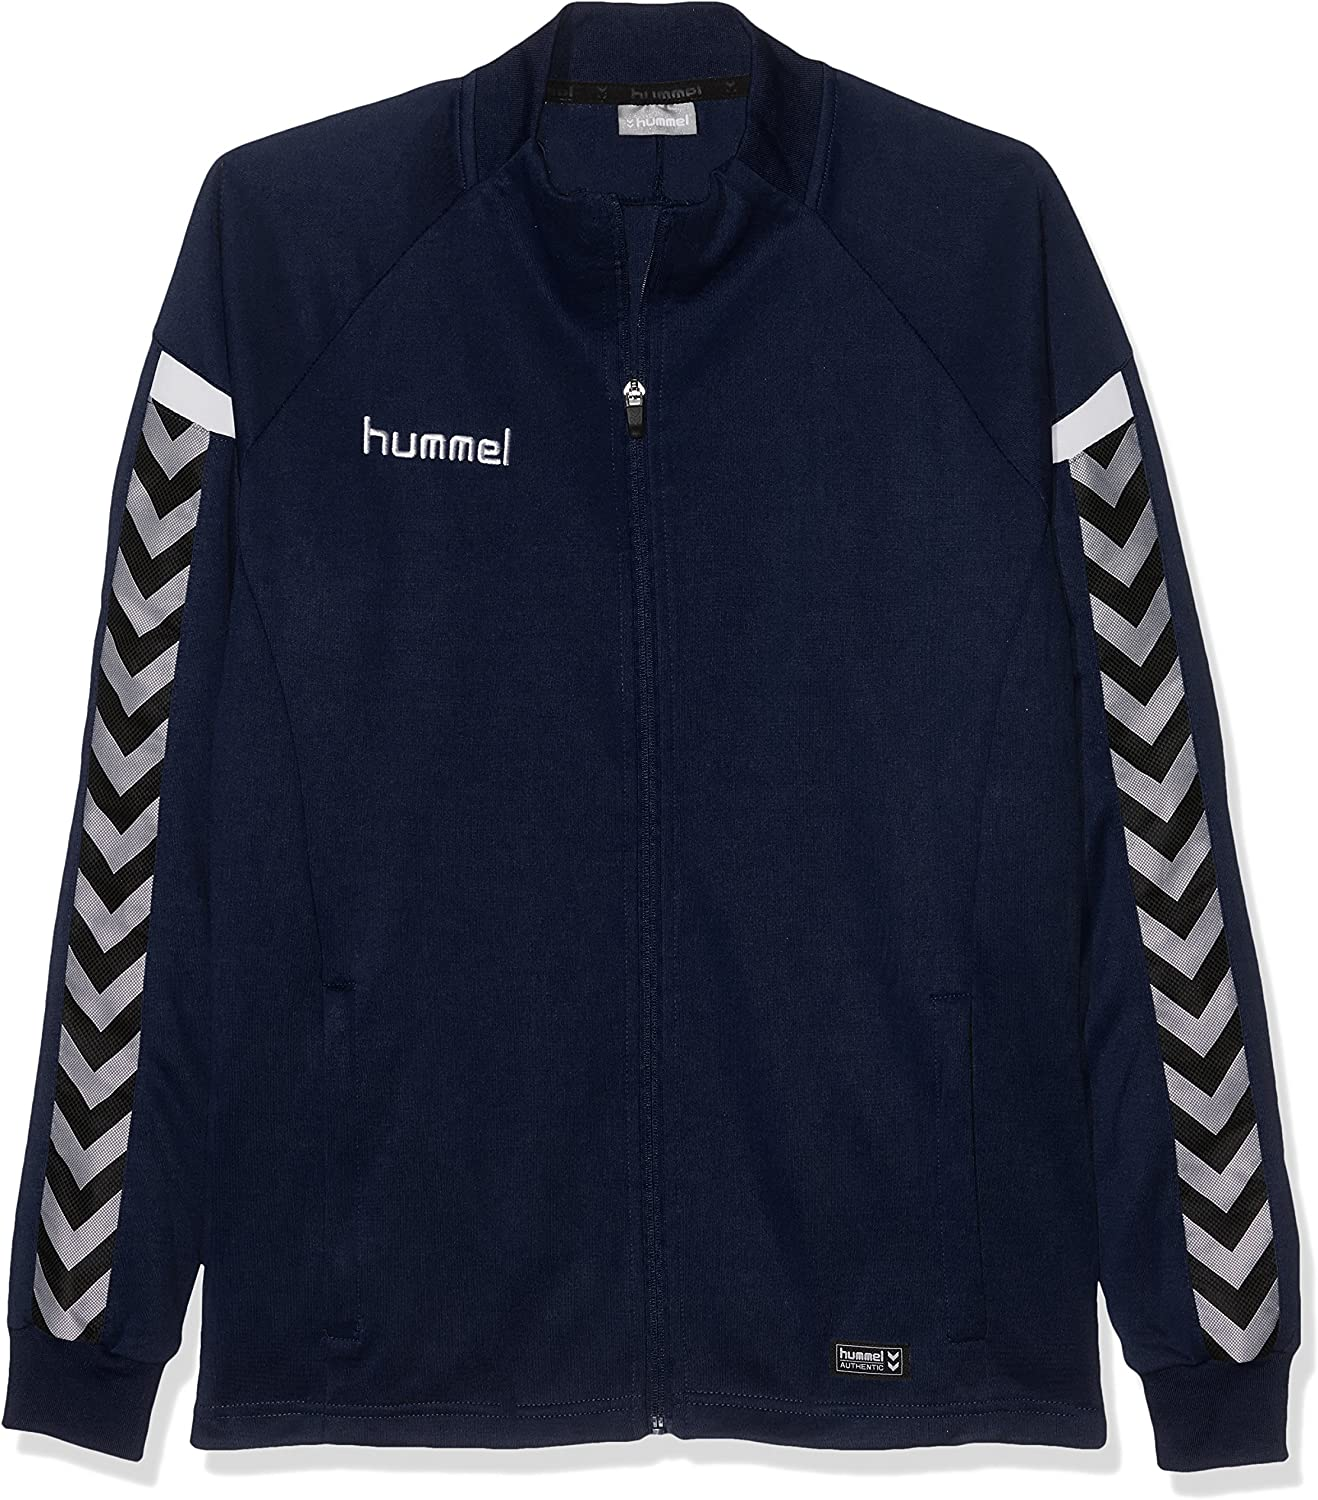 hummel Joven AUTH Charge Poly Zip Jacket Chaqueta